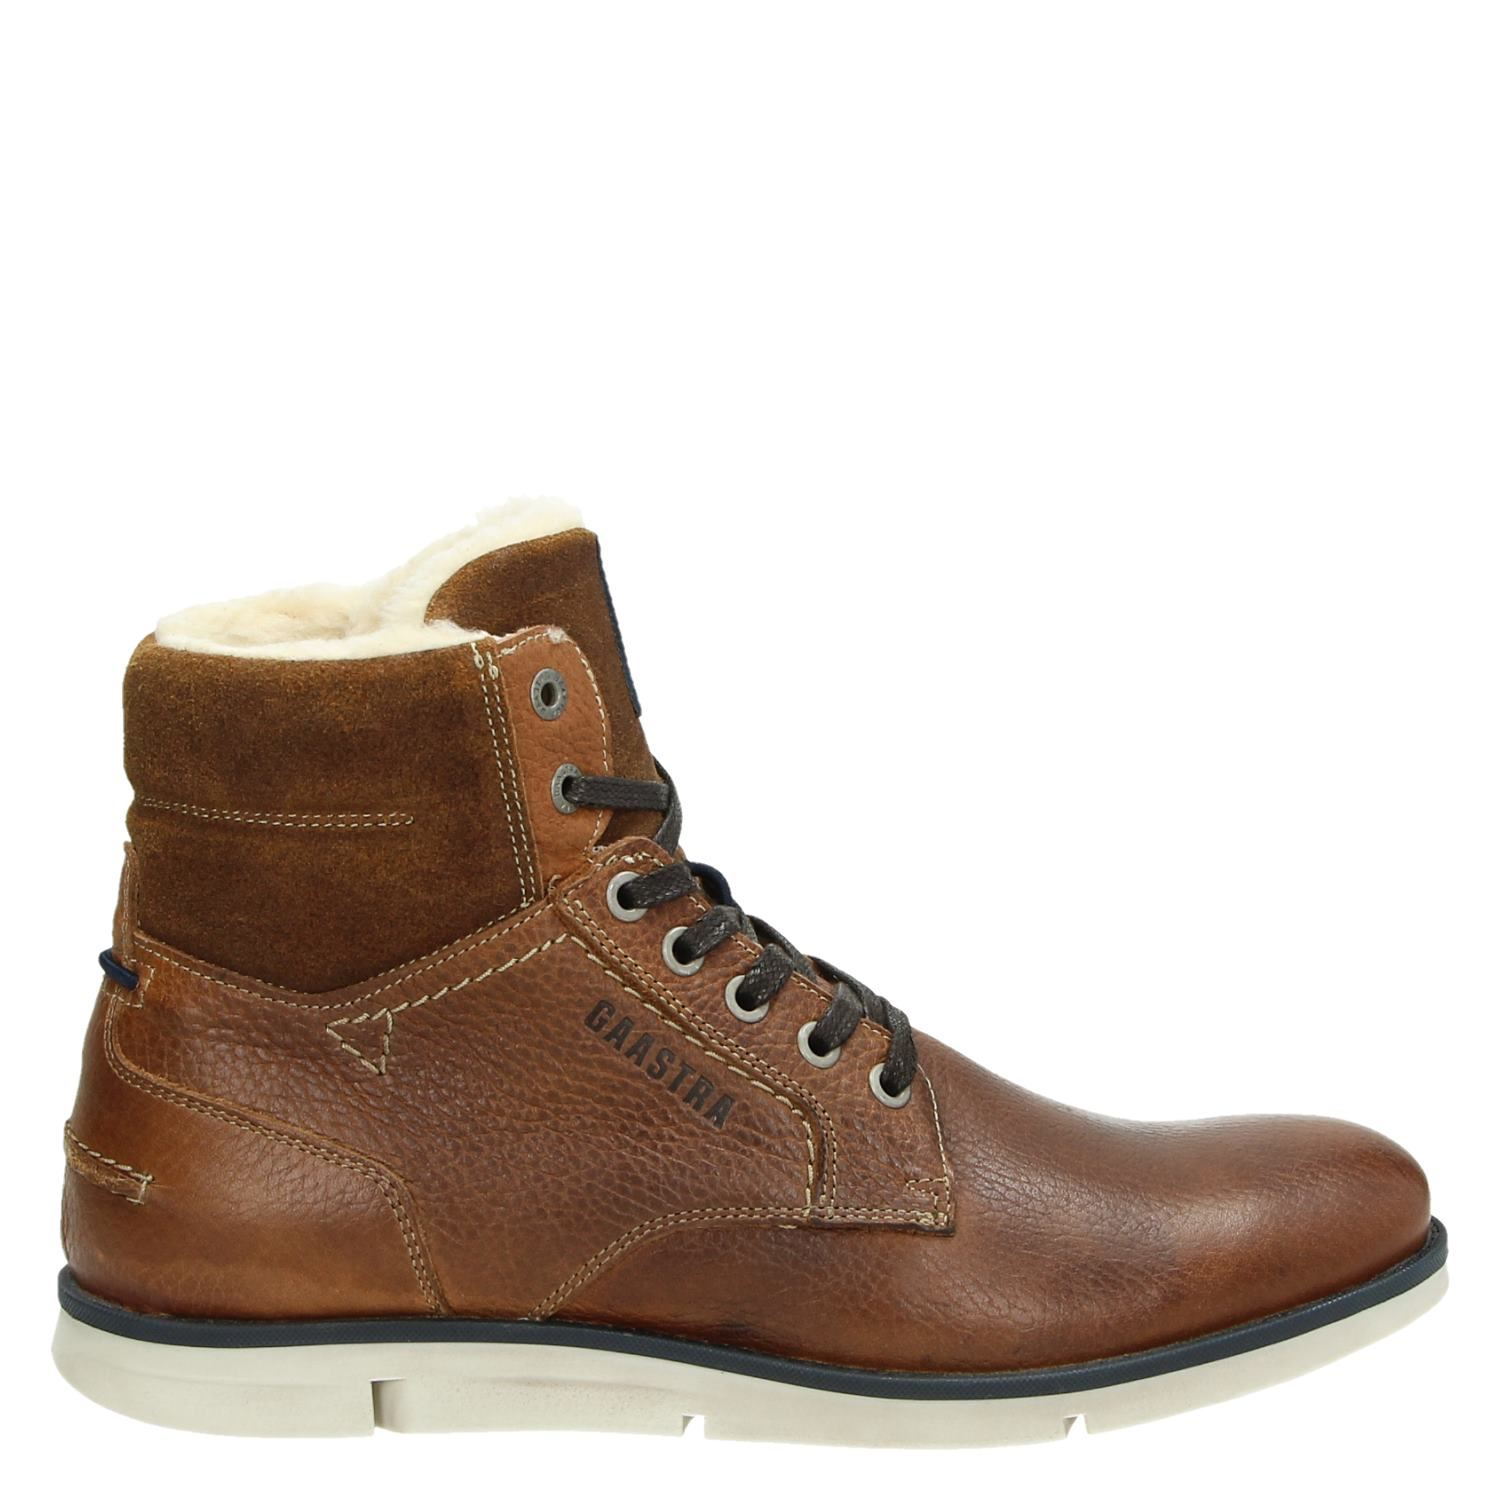 Chaussures Marron Gaastra Pour Hommes Monter À Bord avLKfTBy